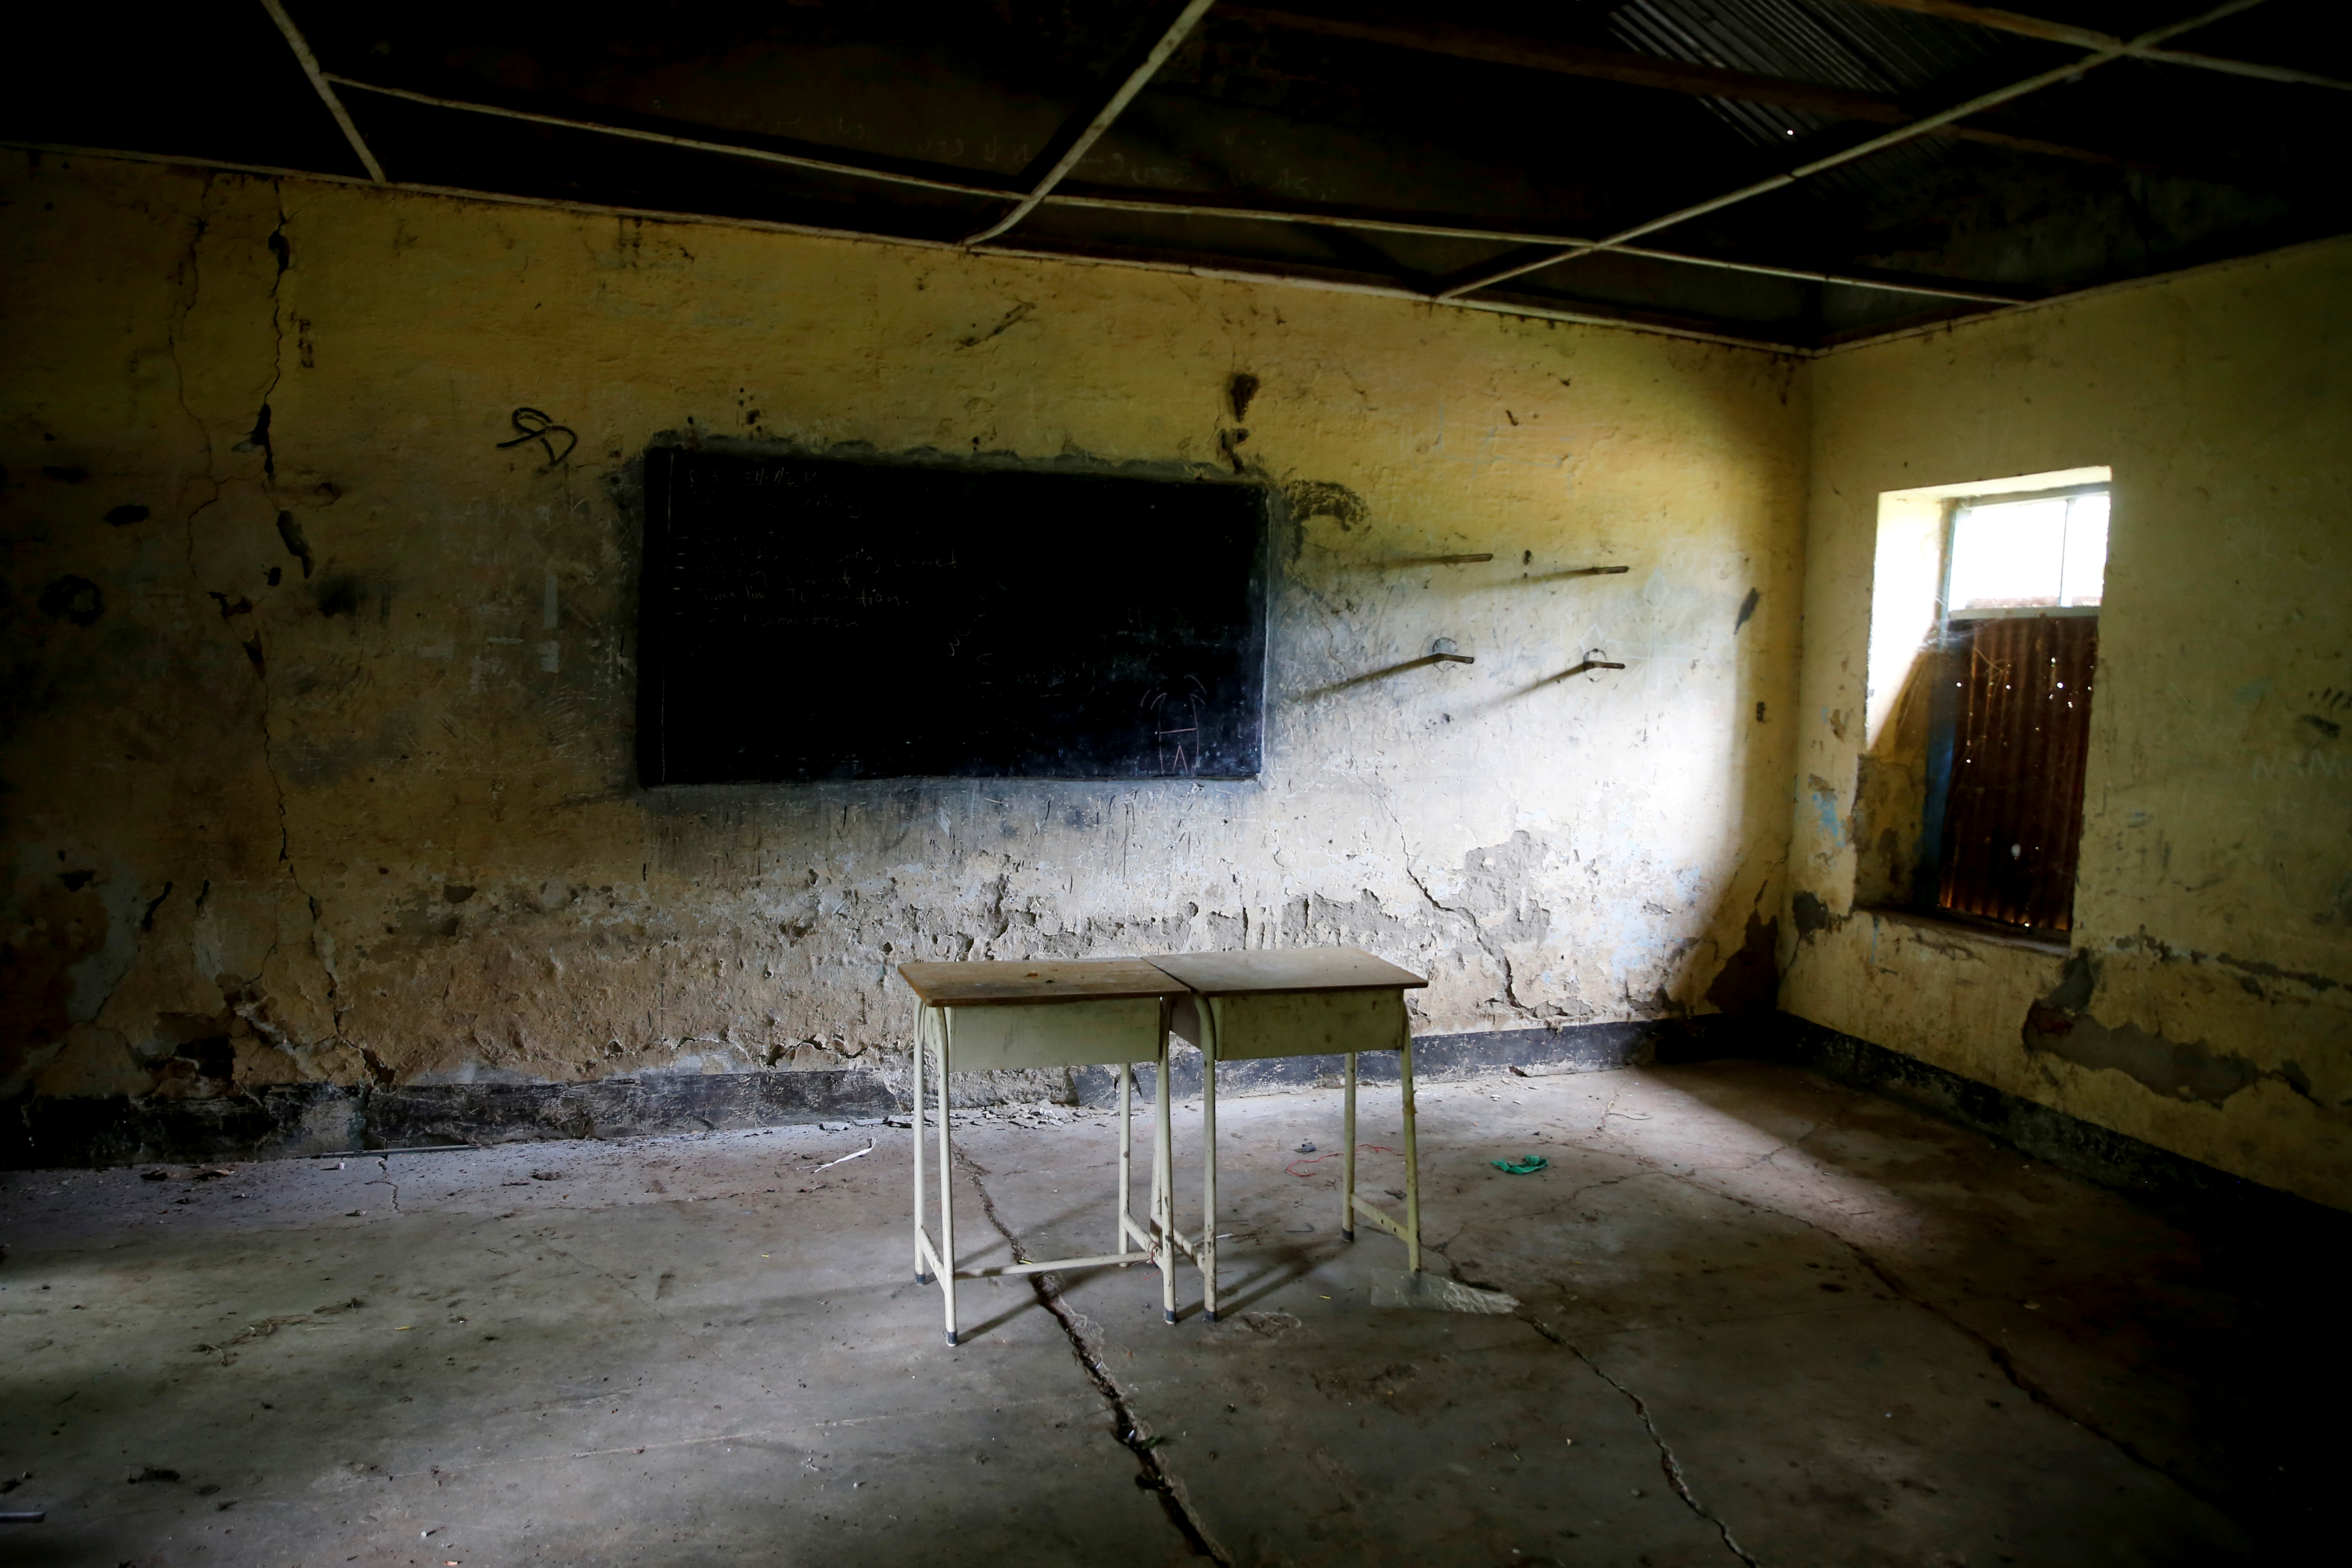 Desks are seen at an abandoned school in the town of Malakal, in the Upper Nile state of South Sudan, Sept. 8, 2018